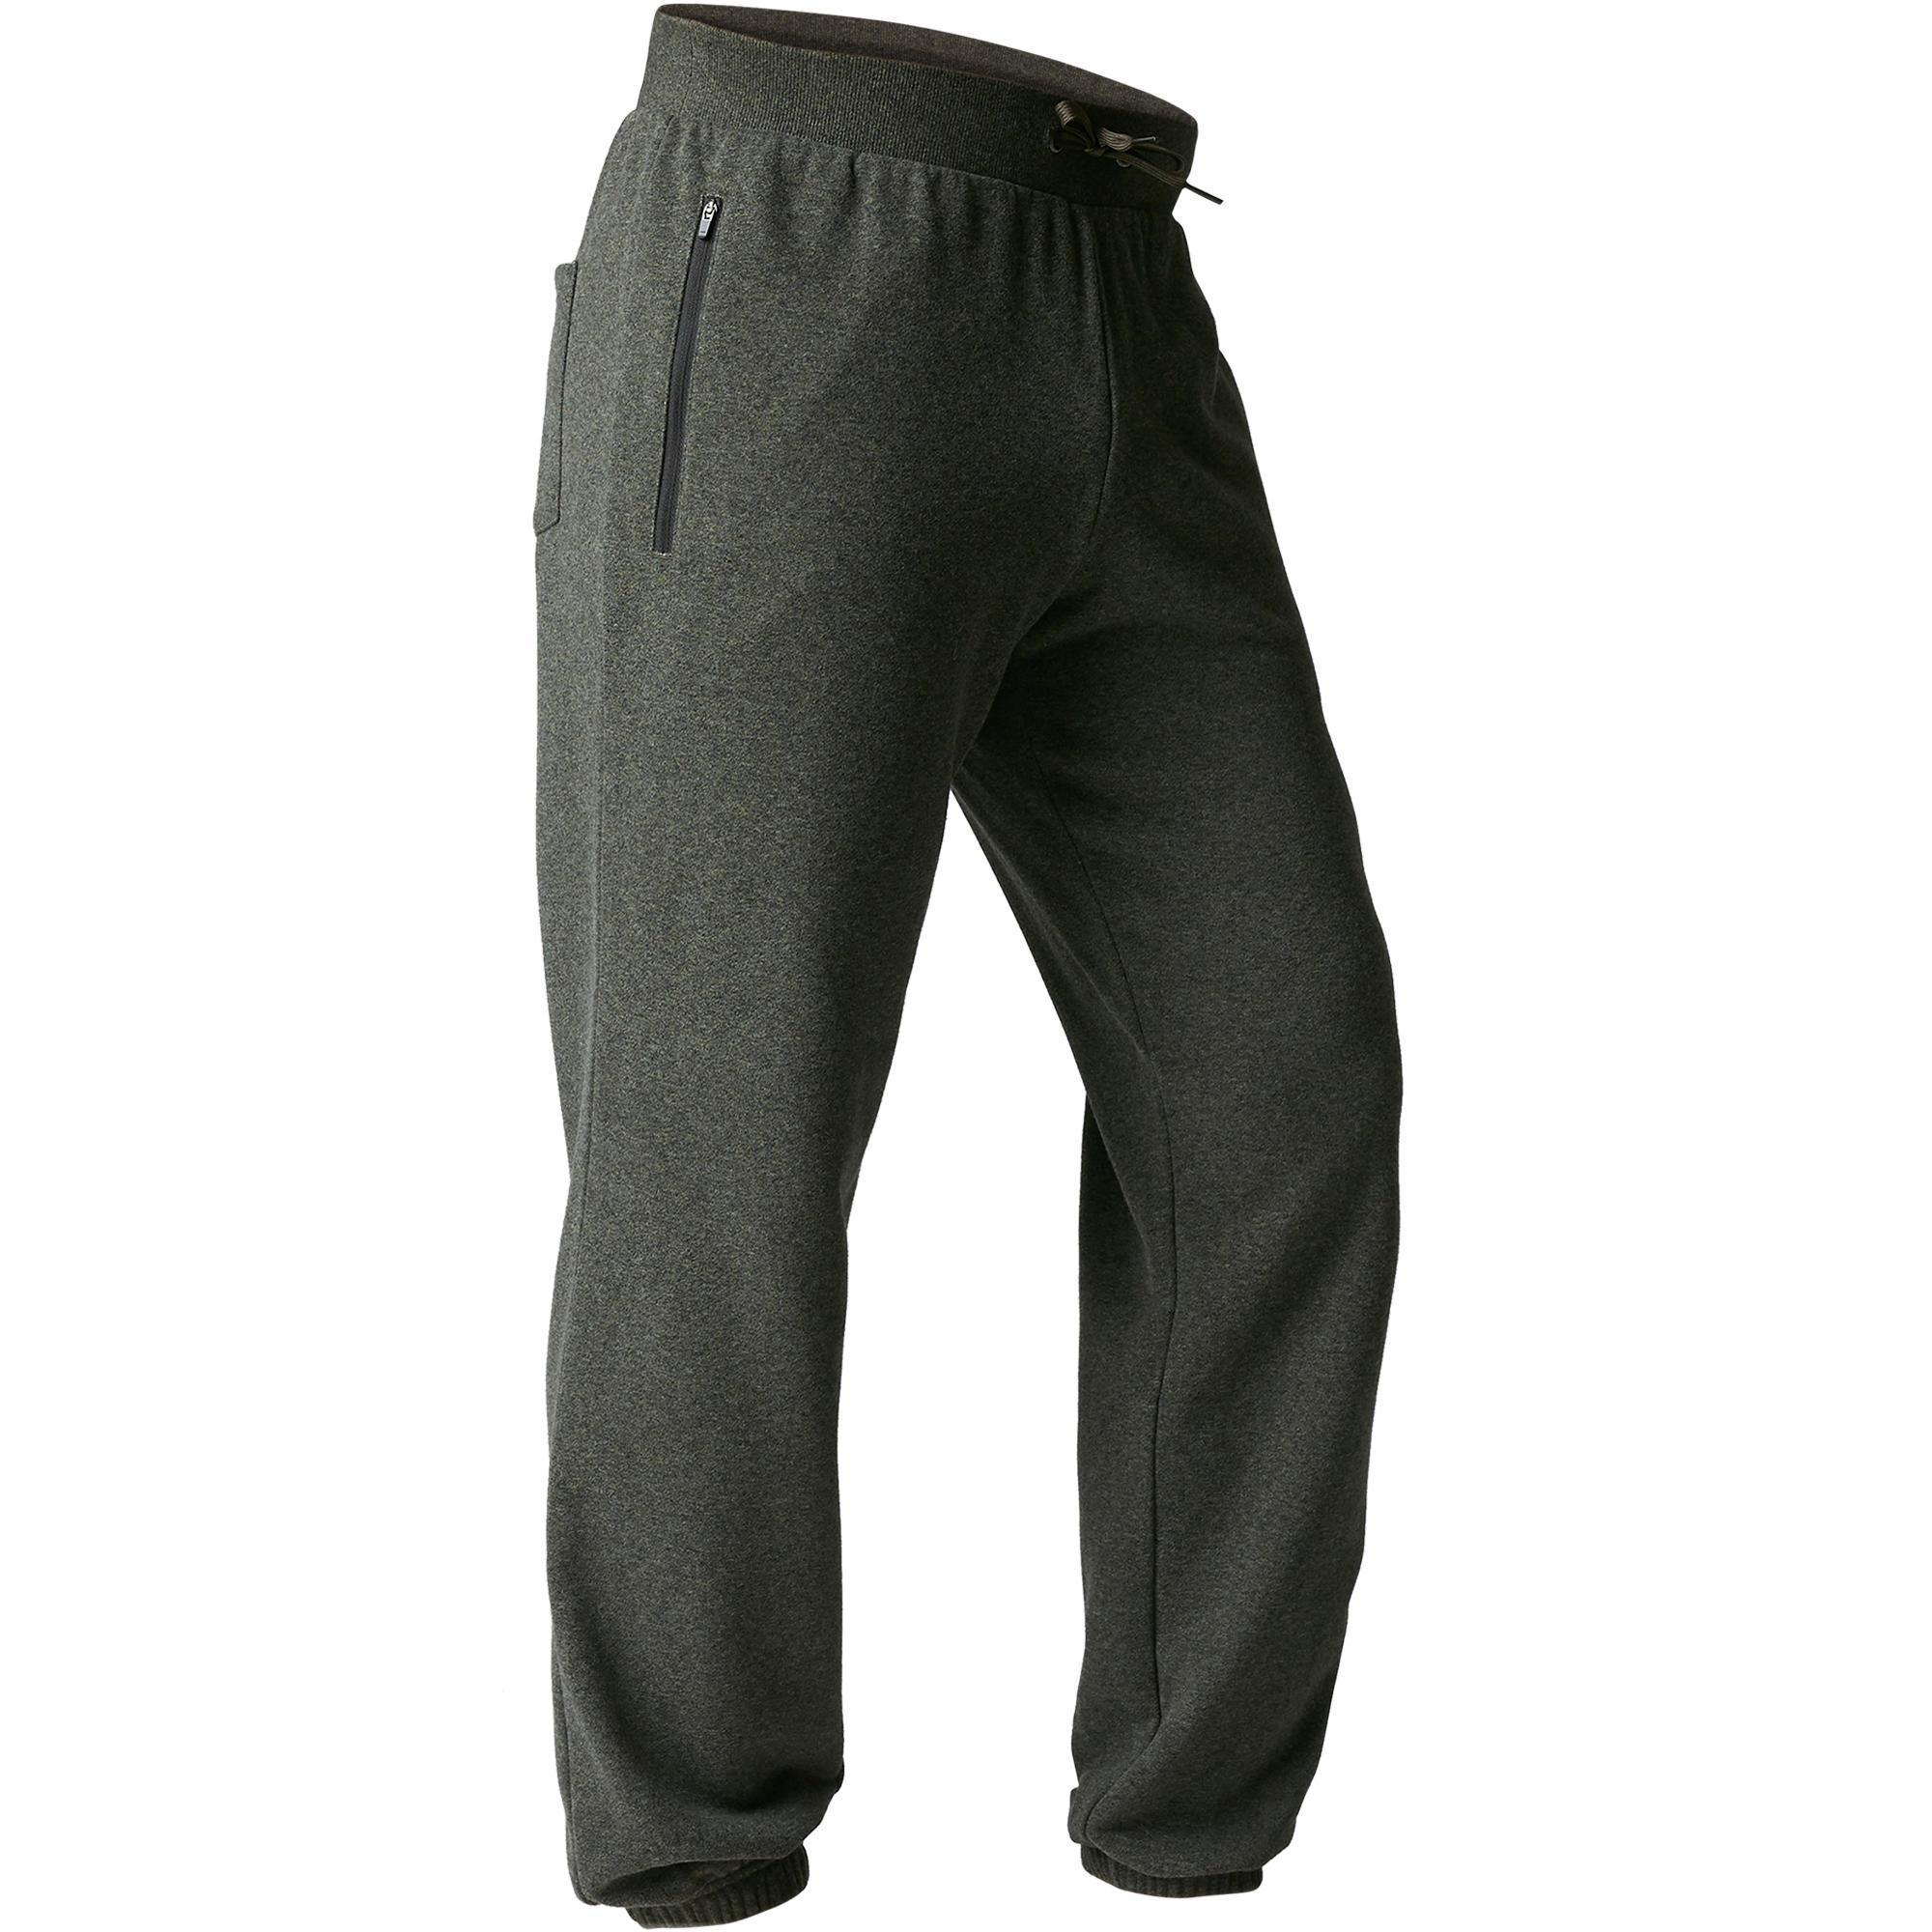 Pantalon Chandal Decathlon Hombre Cheaper Than Retail Price Buy Clothing Accessories And Lifestyle Products For Women Men